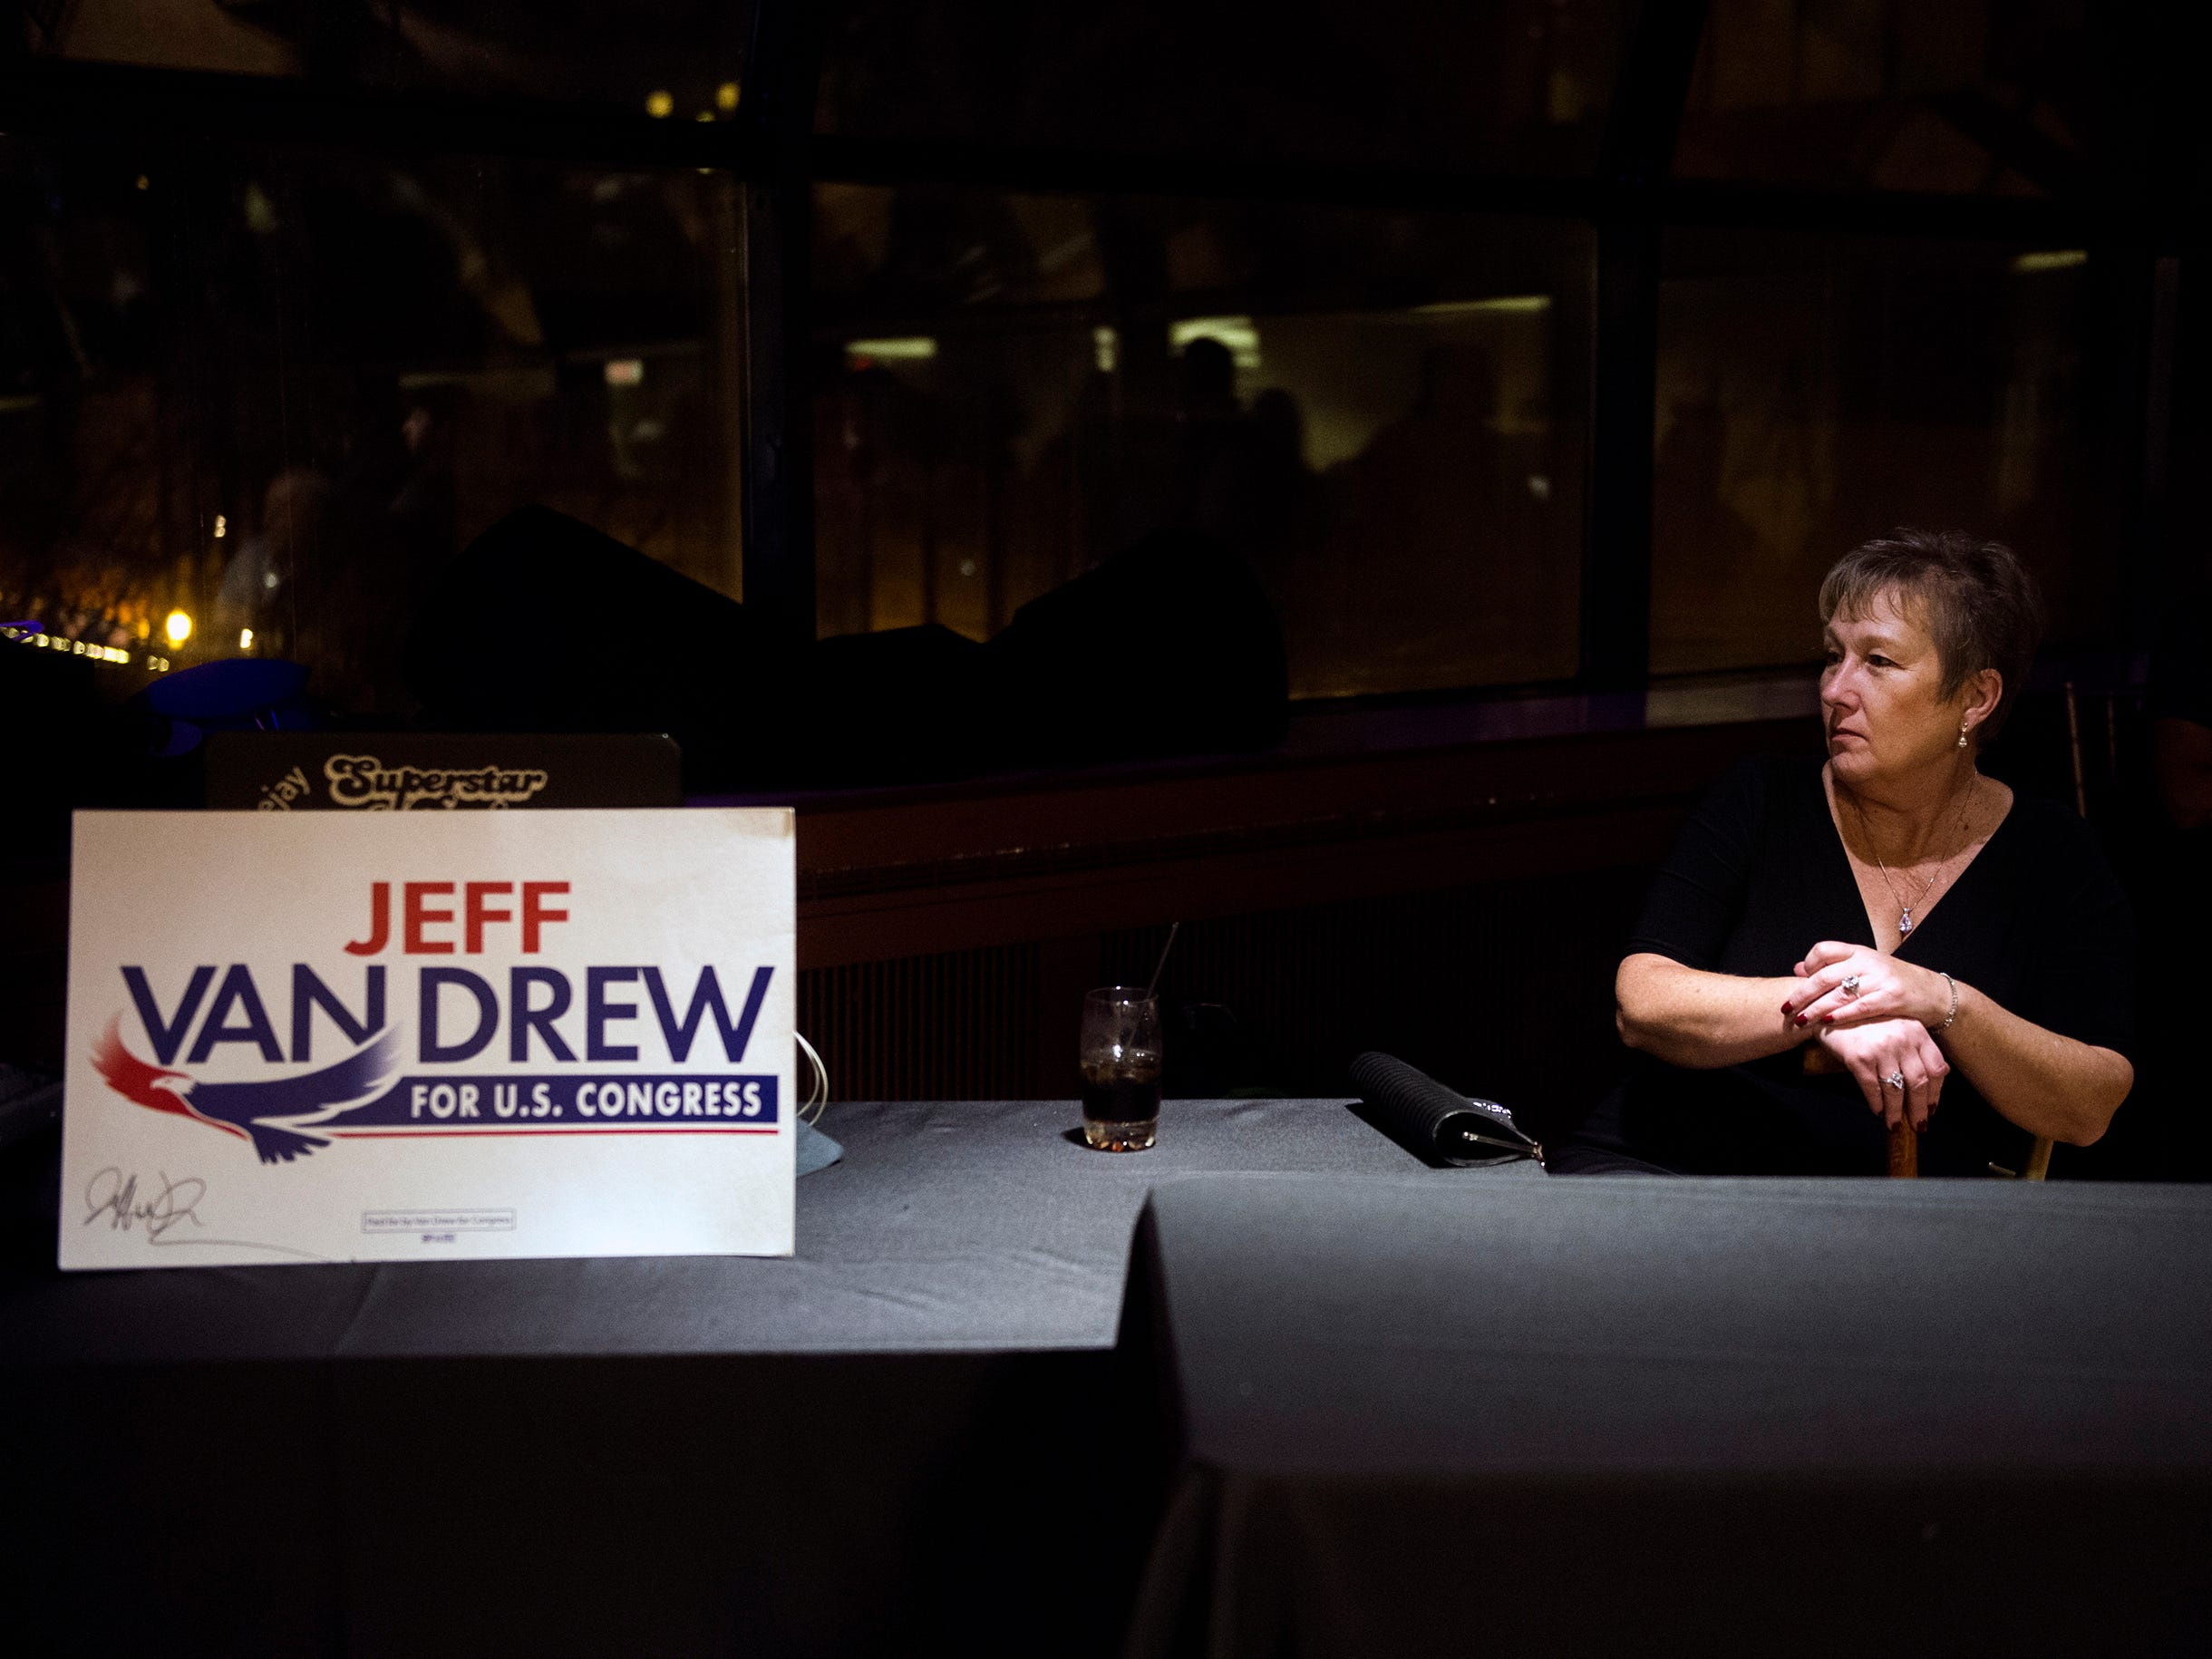 Maggie Povio, a supporter and neighbor of NJ Sen. Jeff Van Drew, looks on at his election night headquarters Tuesday, Nov. 6, 2018 at The Claridge Hotel in Atlantic City, N.J.